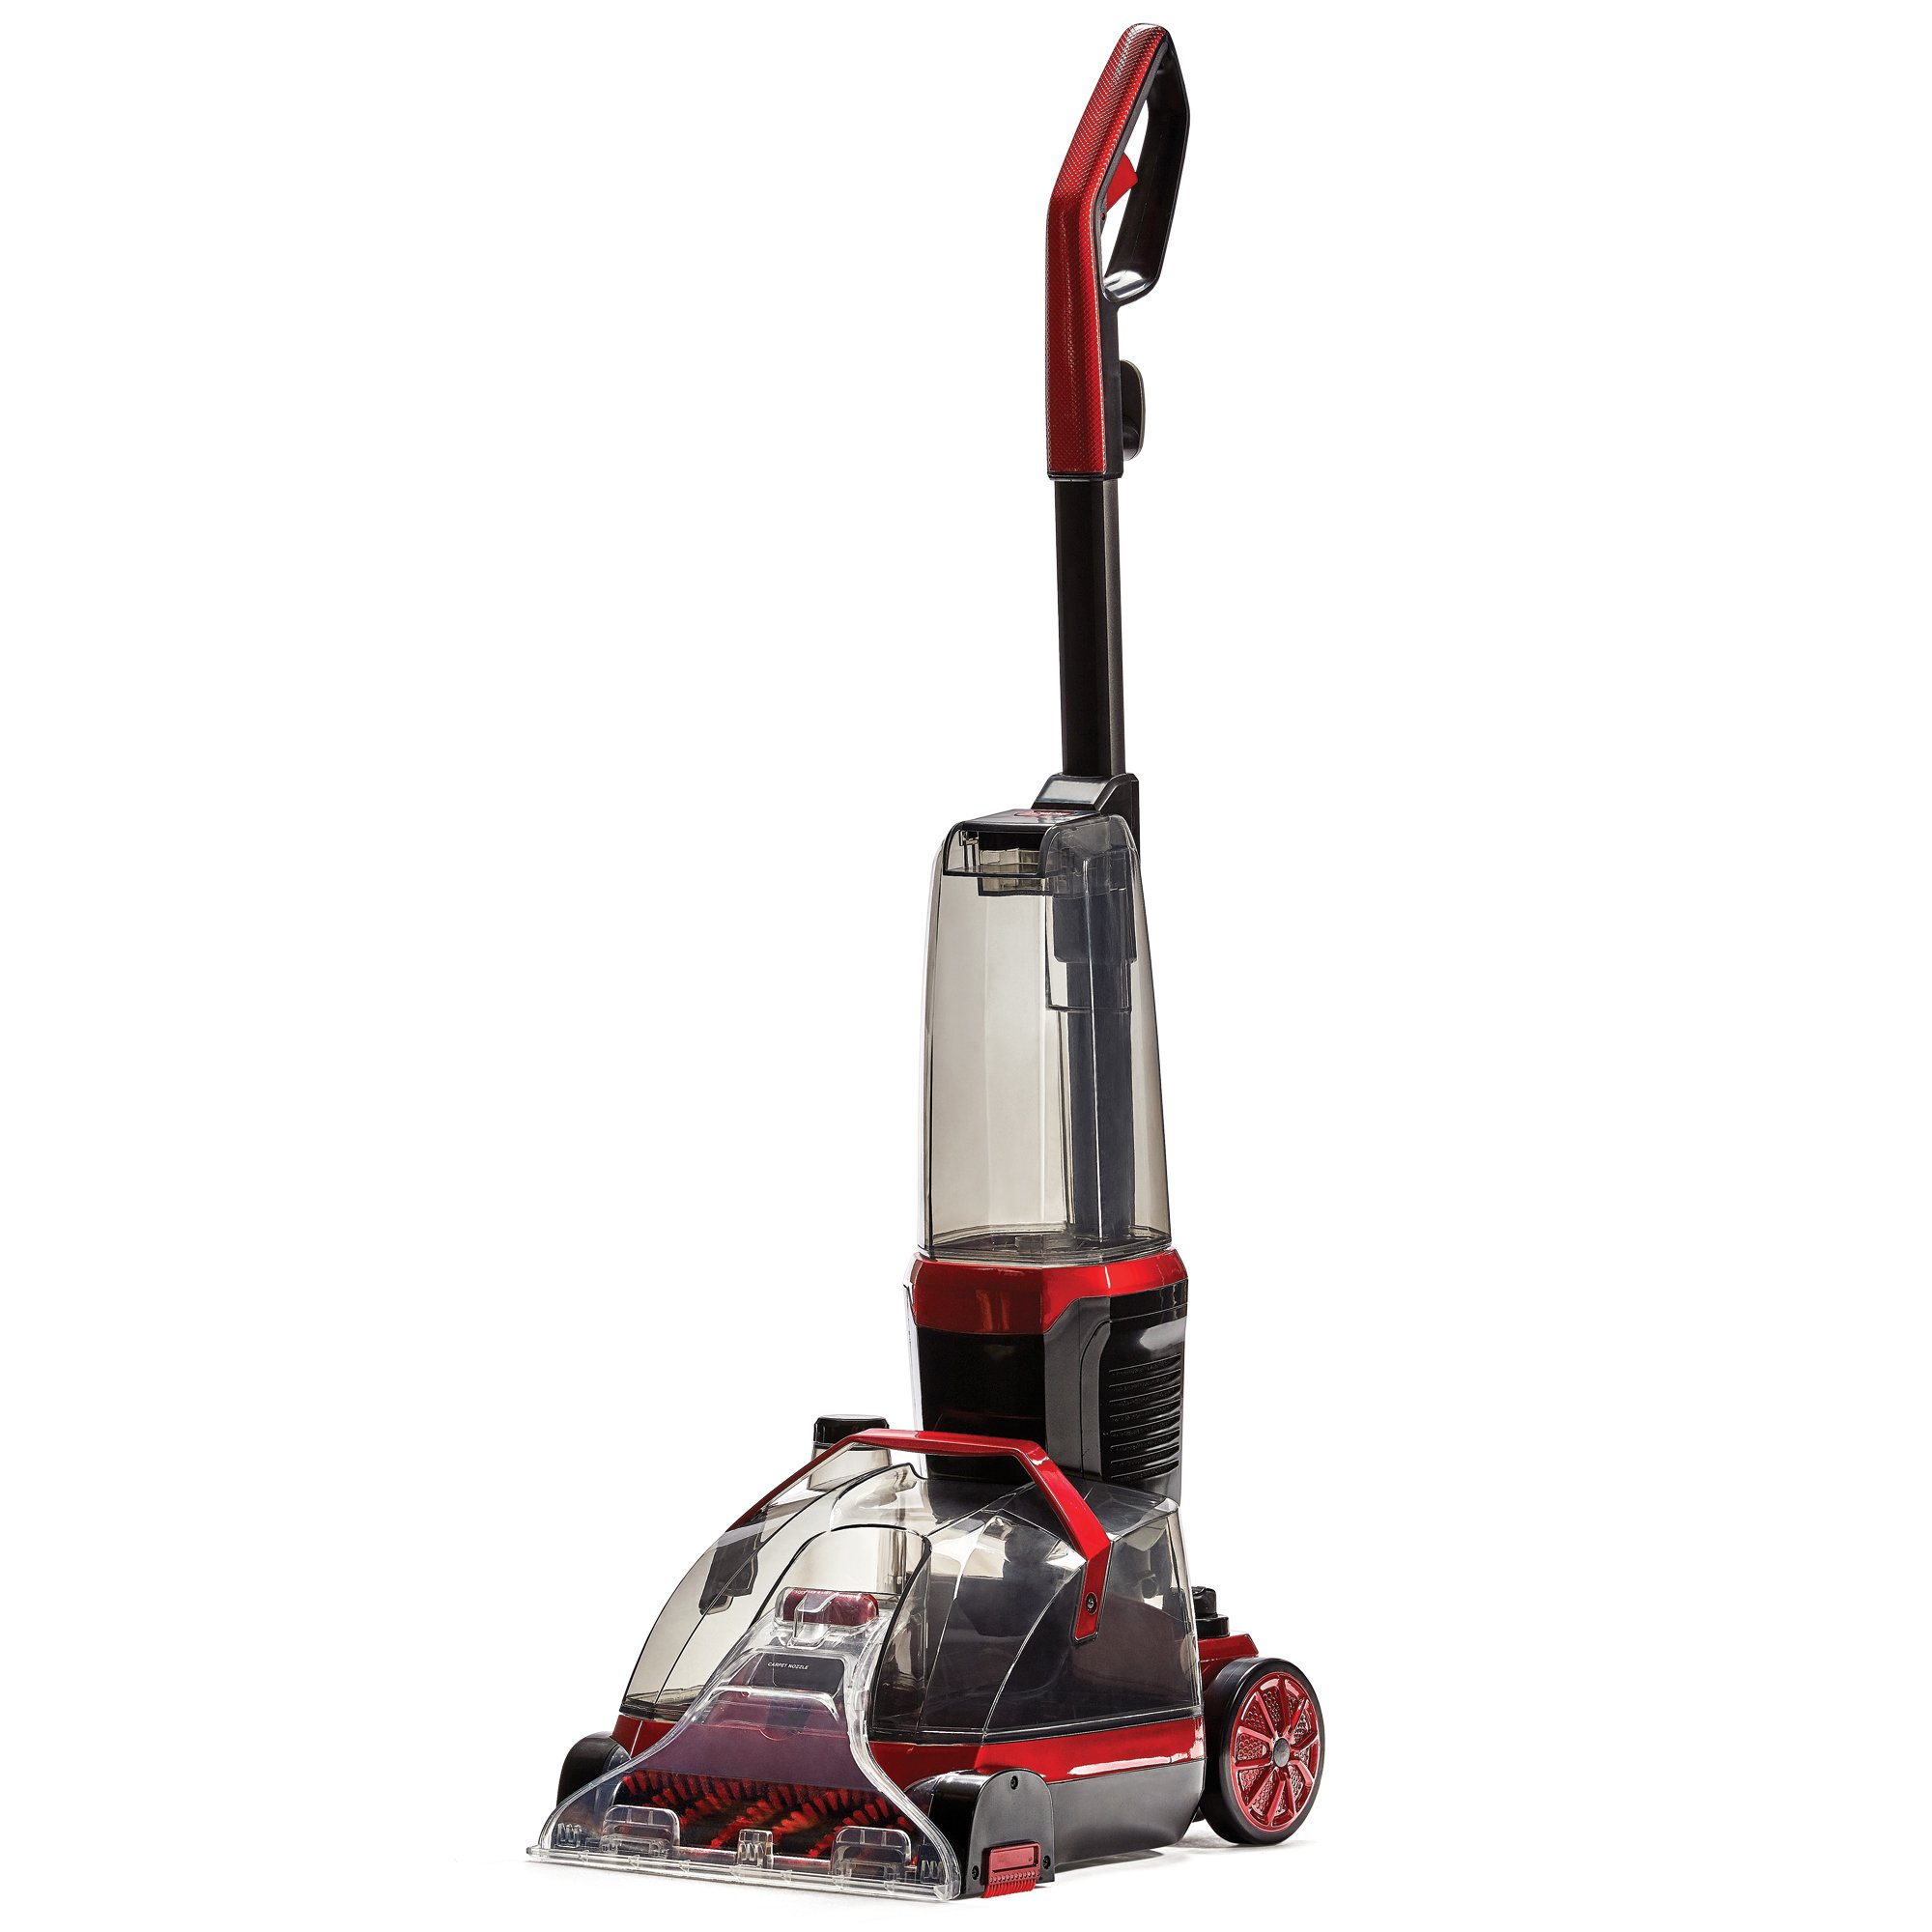 Rug Doctor Flexclean Machine Lightweight, Easy-Maneuver Cleaner Uses One Solution for Both Carpet and Sealed Hard Floors Powerful Suction for Deep Clean, Routine Quick Dry